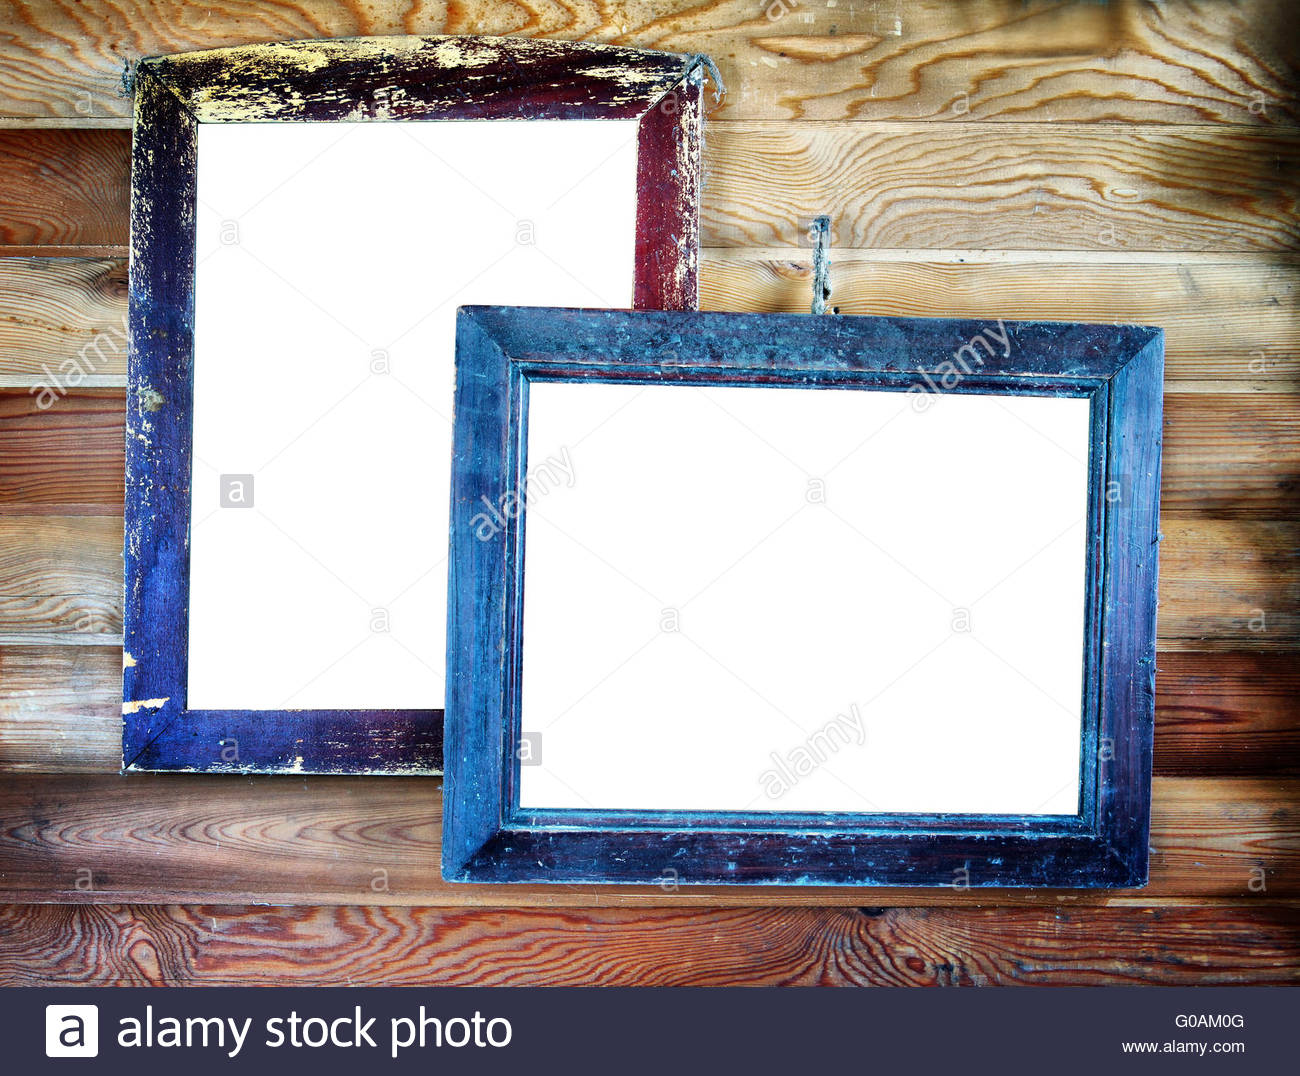 Two old vintage wooden frames with empty space for text hanging on ...